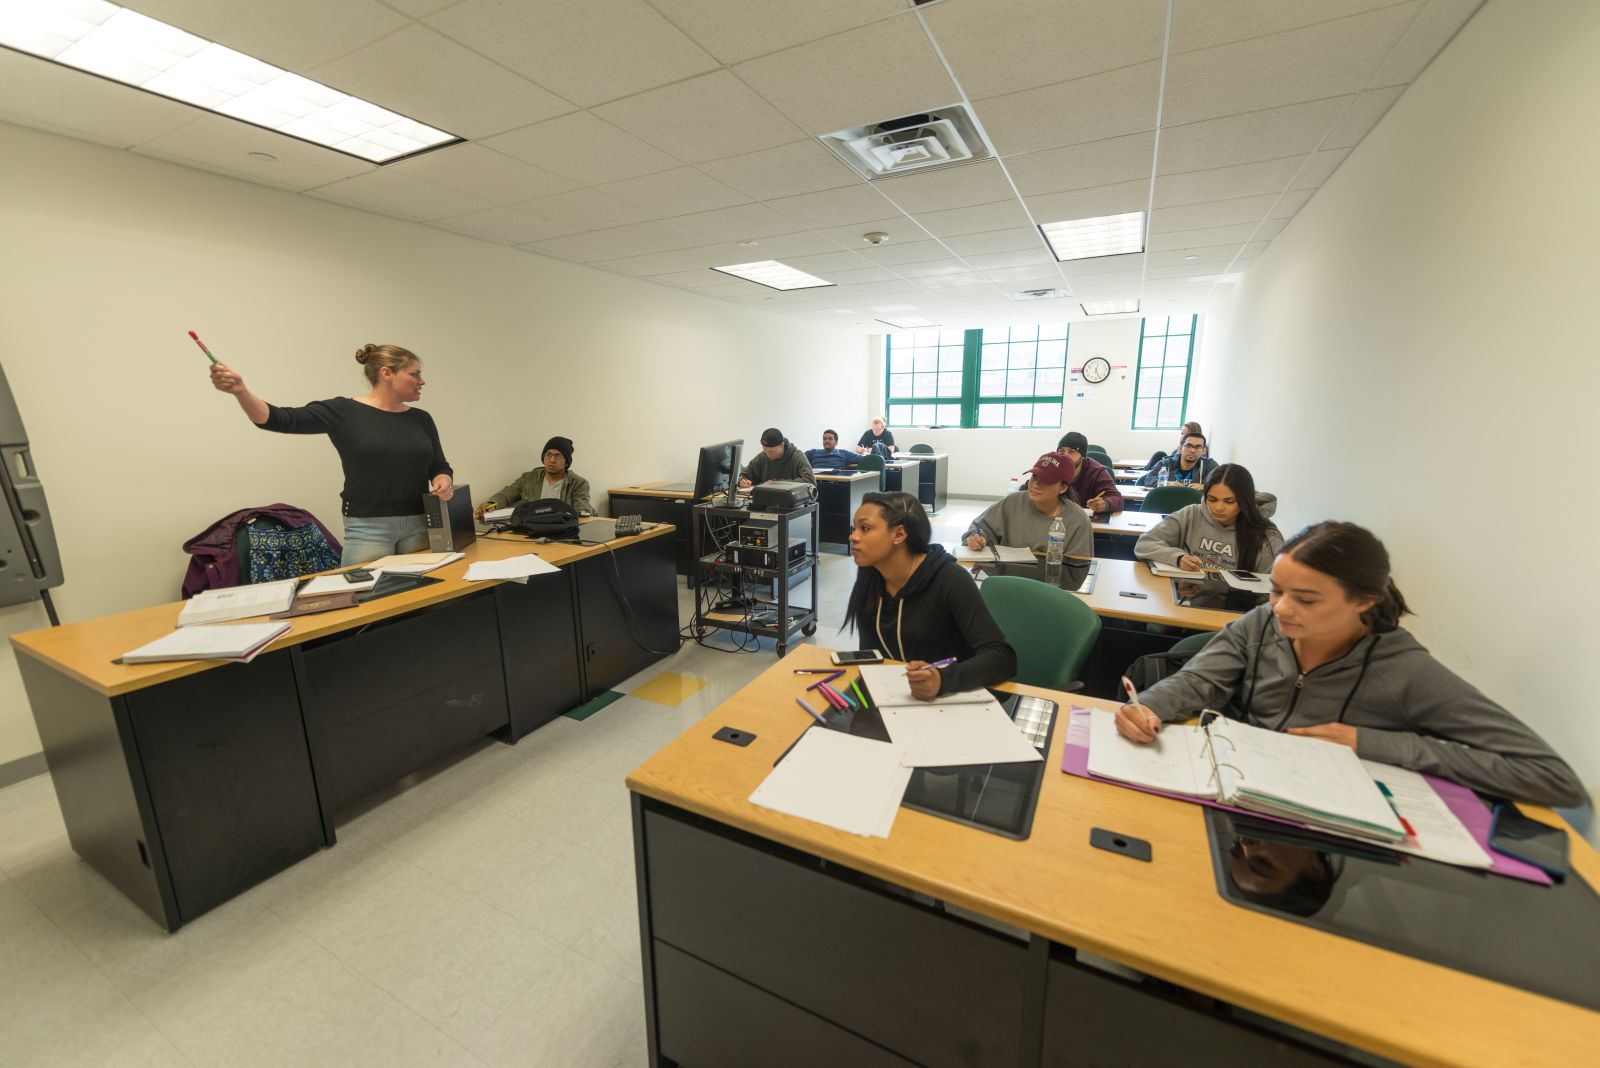 Class at the Haverstraw Center at SUNY Rockland